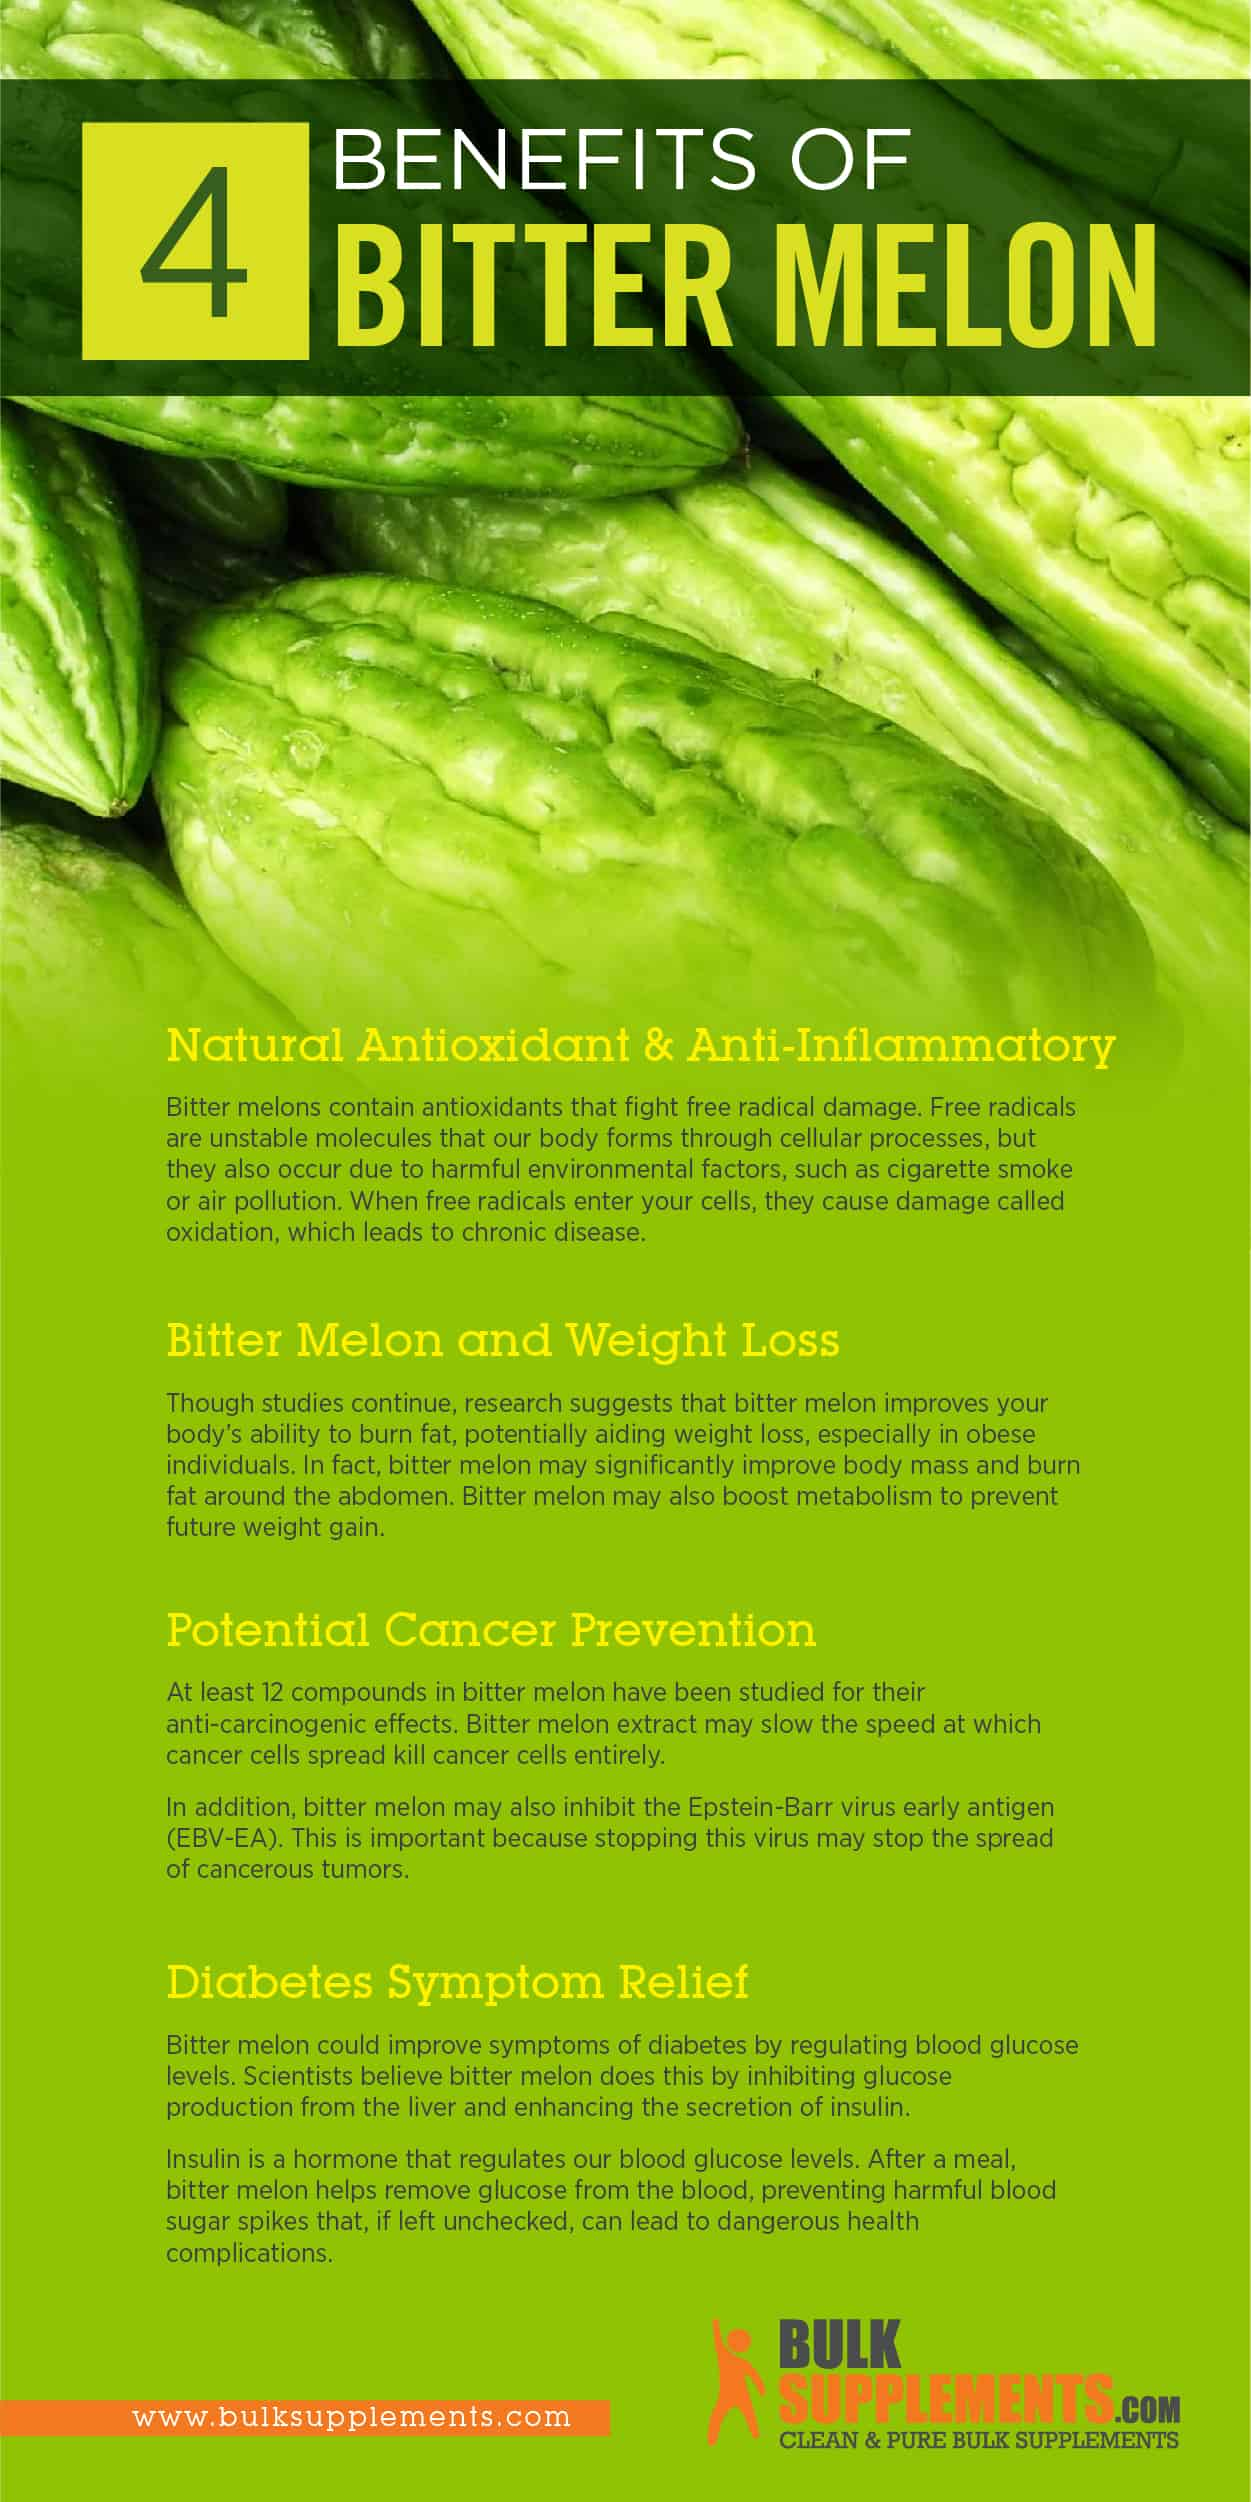 Bitter Melon Benefits, Side Effects and Dosage